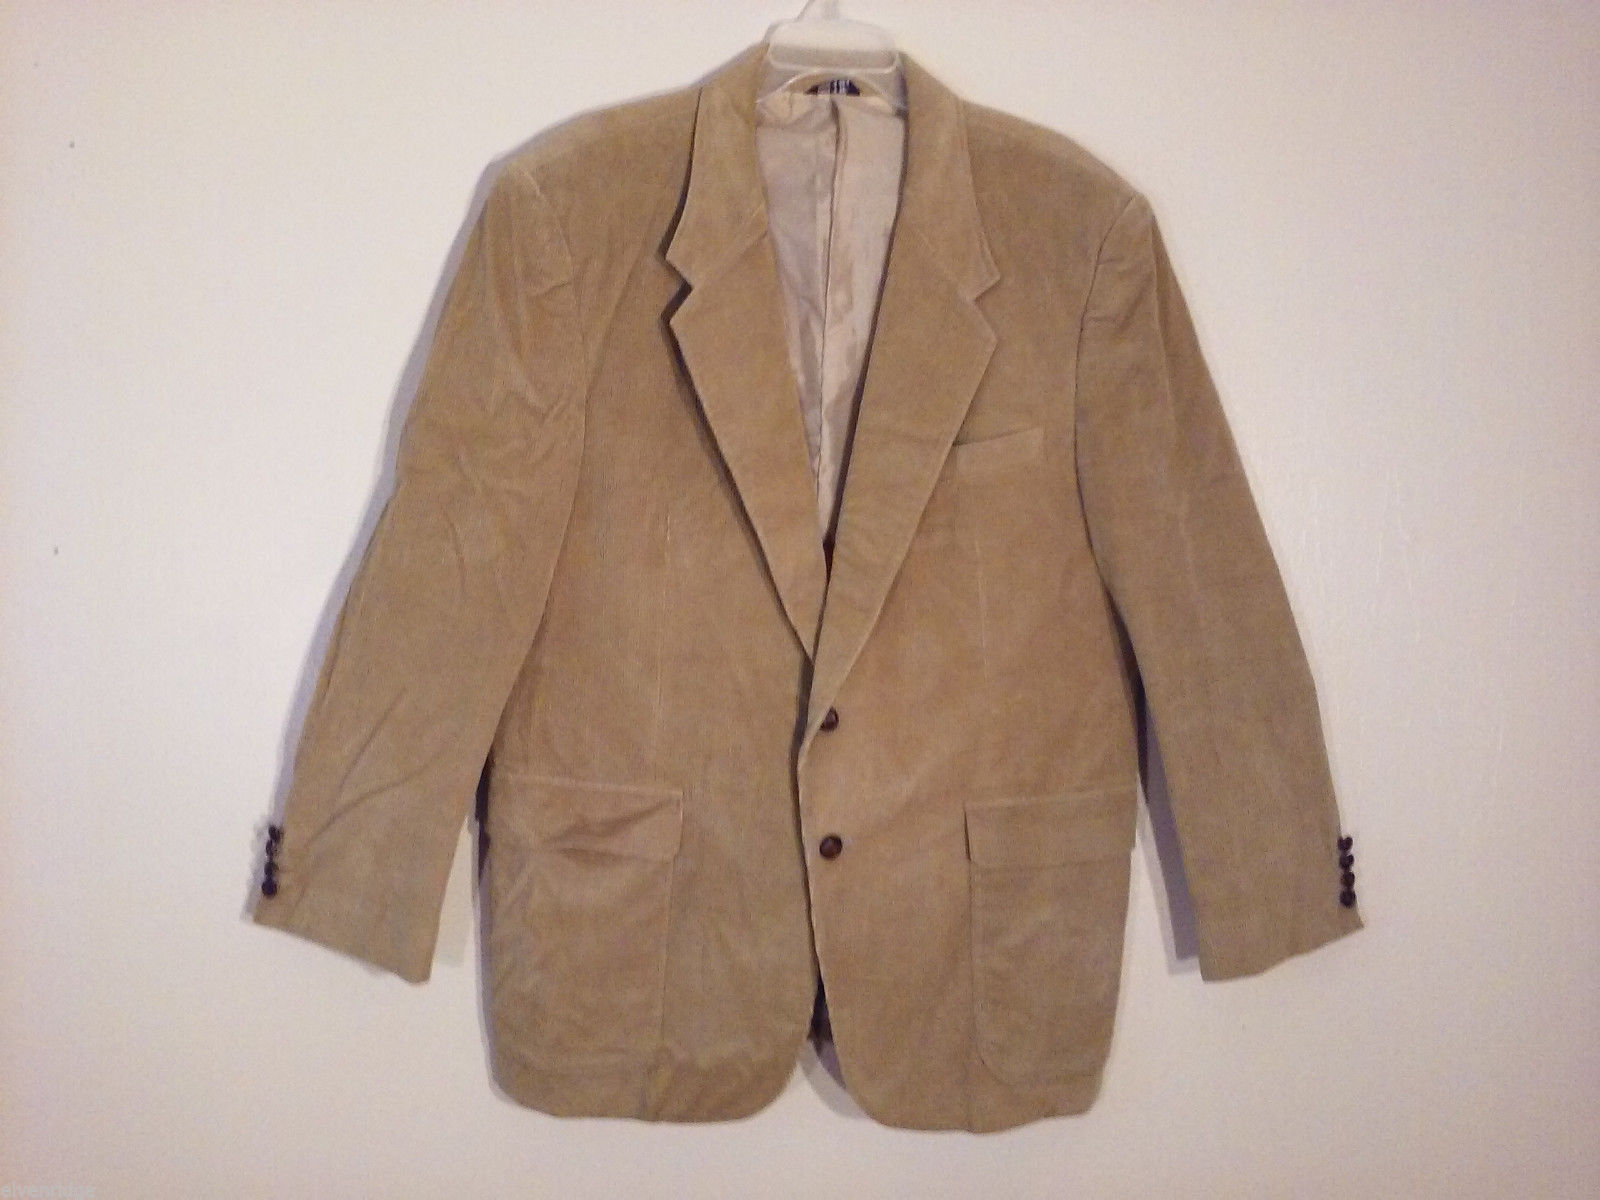 The Men's Store Size 46R XL Corduroy Sport Coat Tan Brown Blazer-Style 2 Button